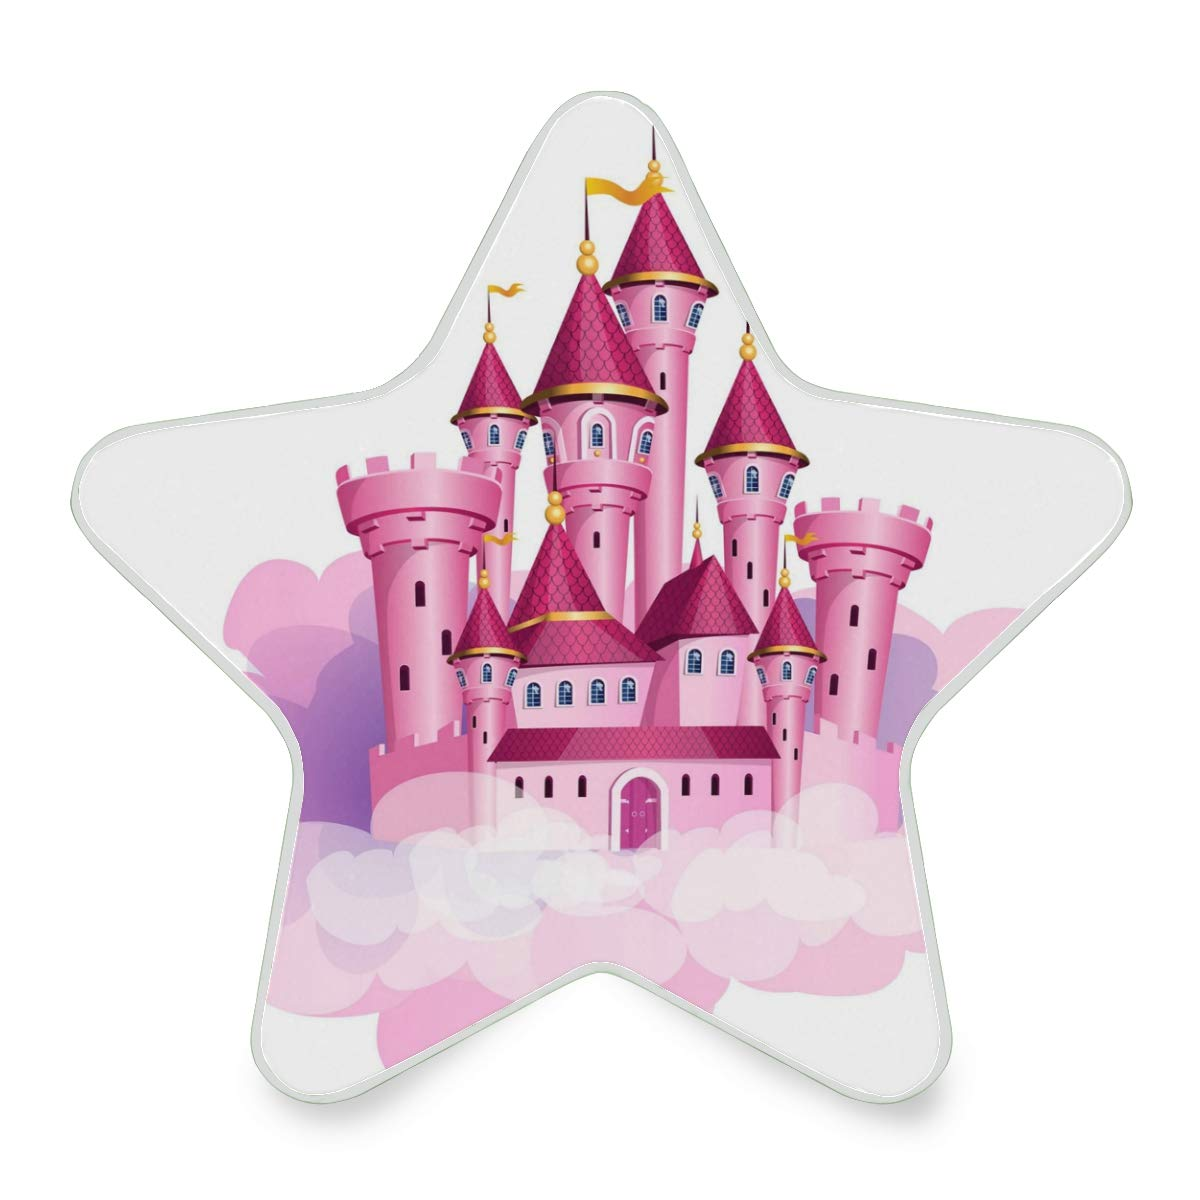 LED Night Light Pink Princess Magic Castle Nightlight Decorative Star Pentagram Shaped Plug in for Kids Baby Girls Boys Adults Room